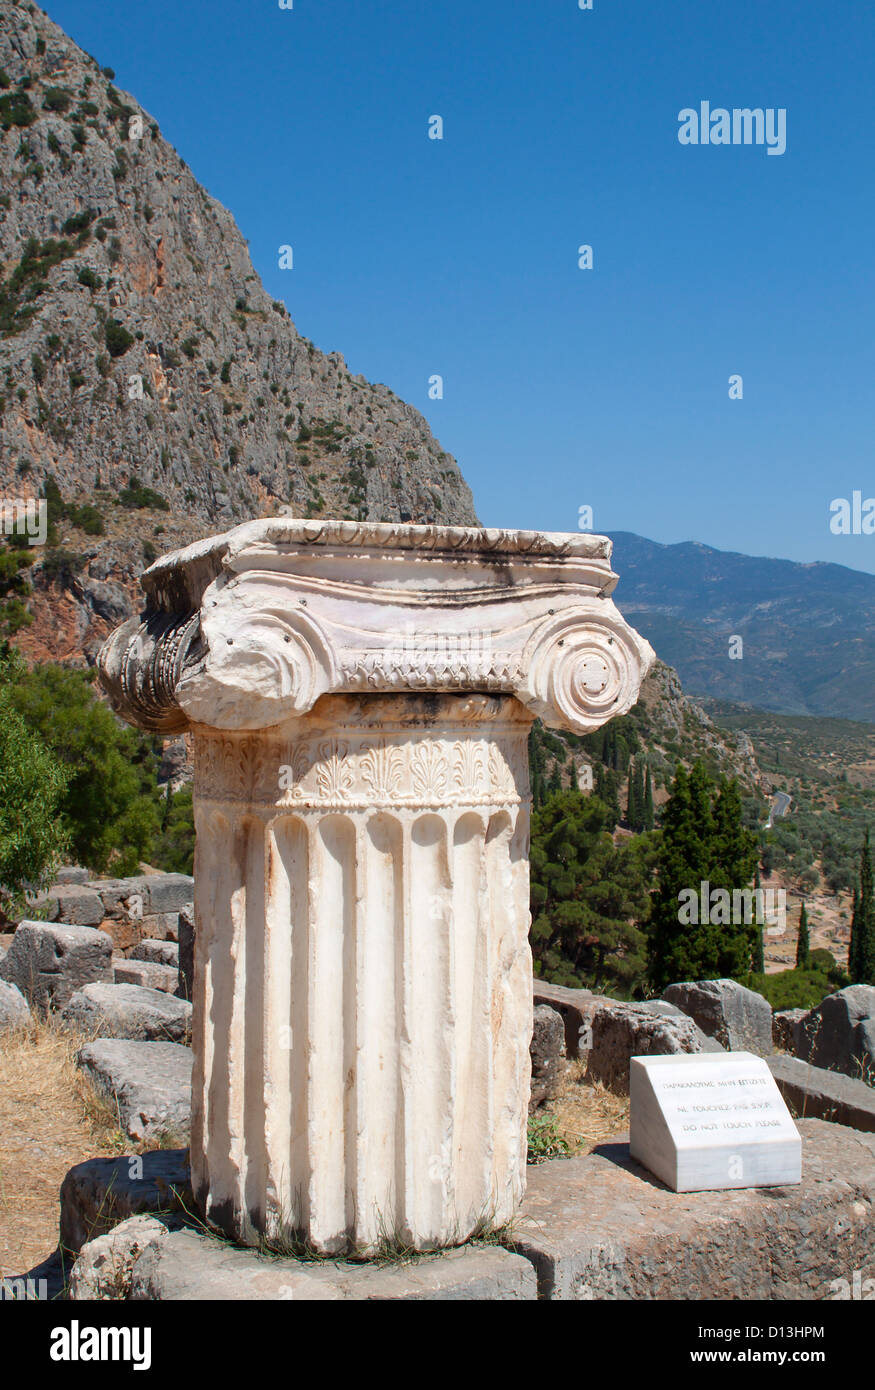 Single ionic order capital at Delphi archaeological site in Greece Stock Photo